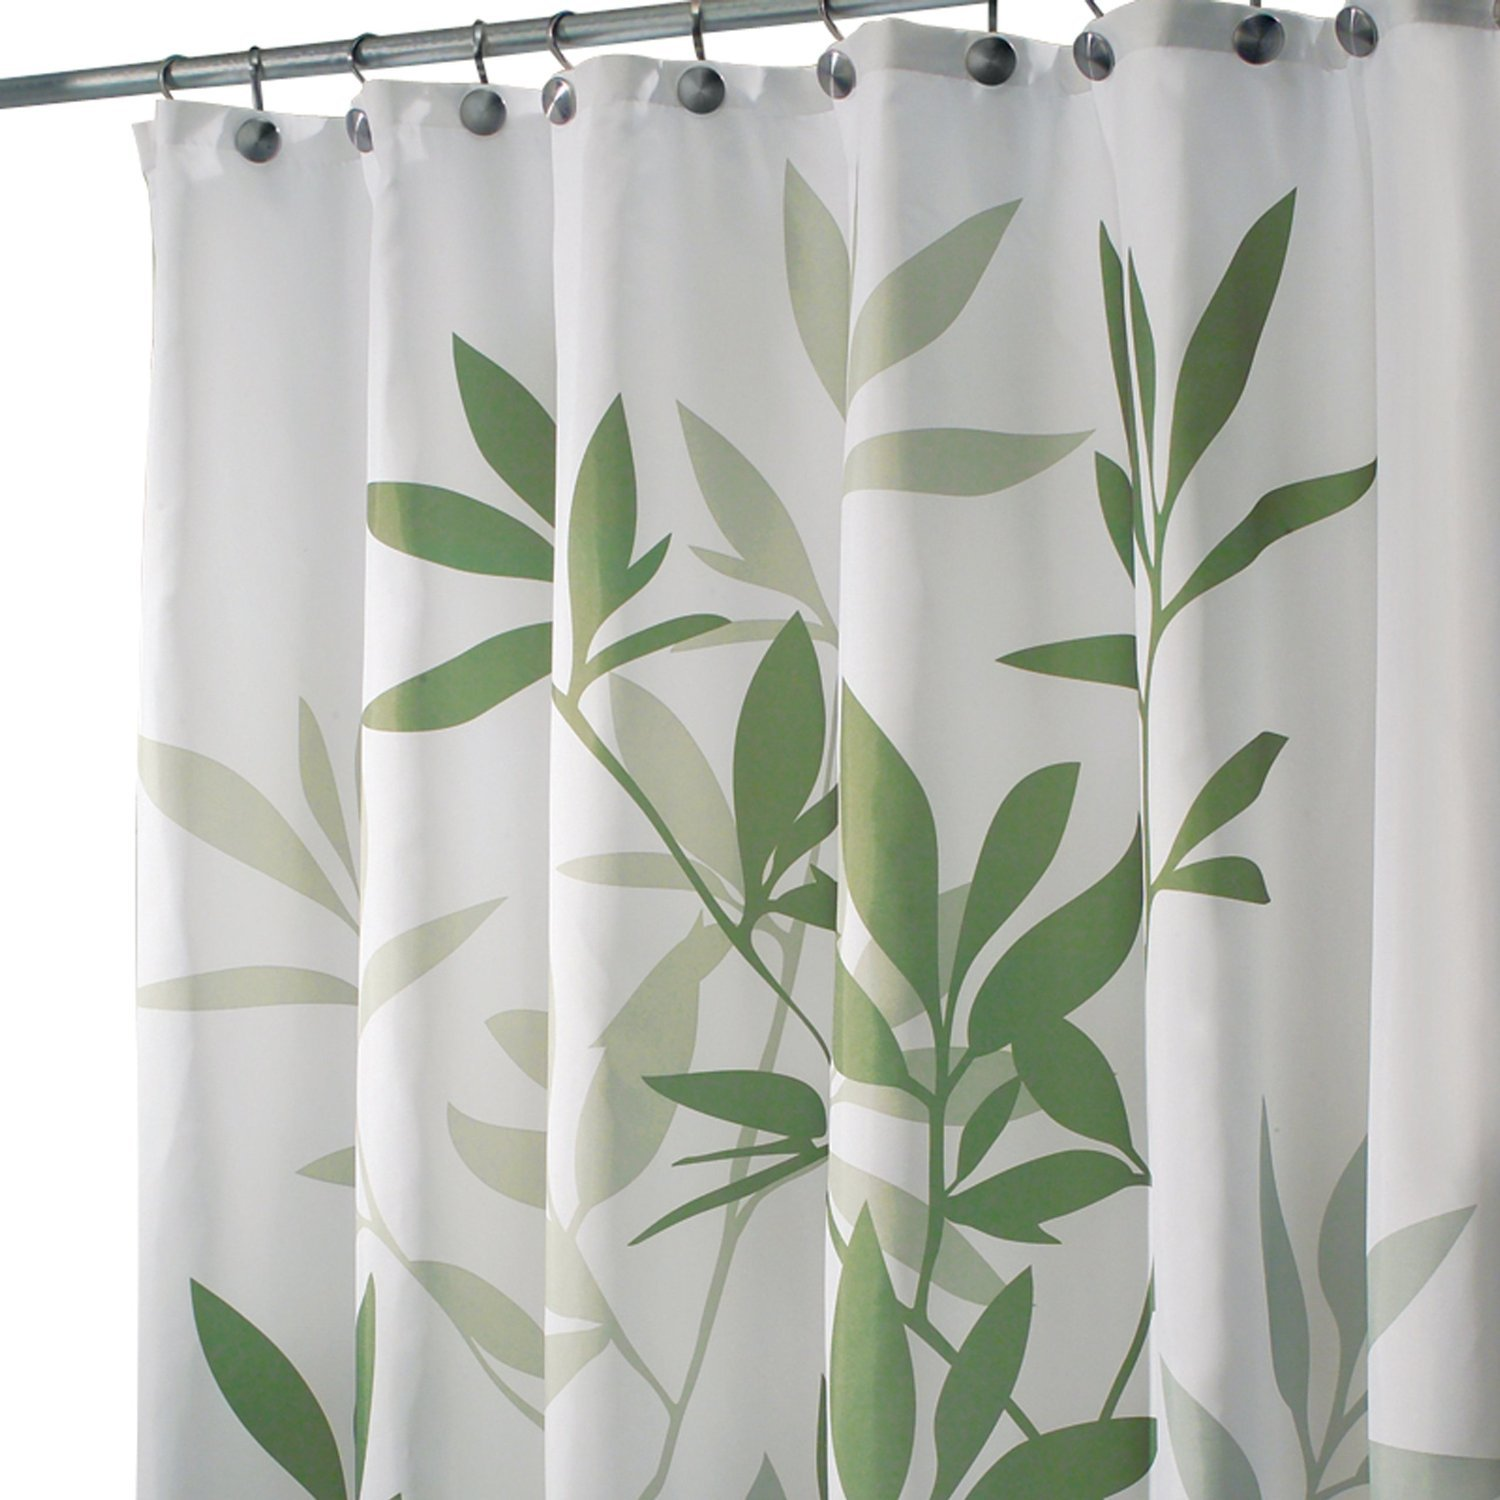 Amazon.com: InterDesign Leaves X-Long Shower Curtain, Green, 72 ...